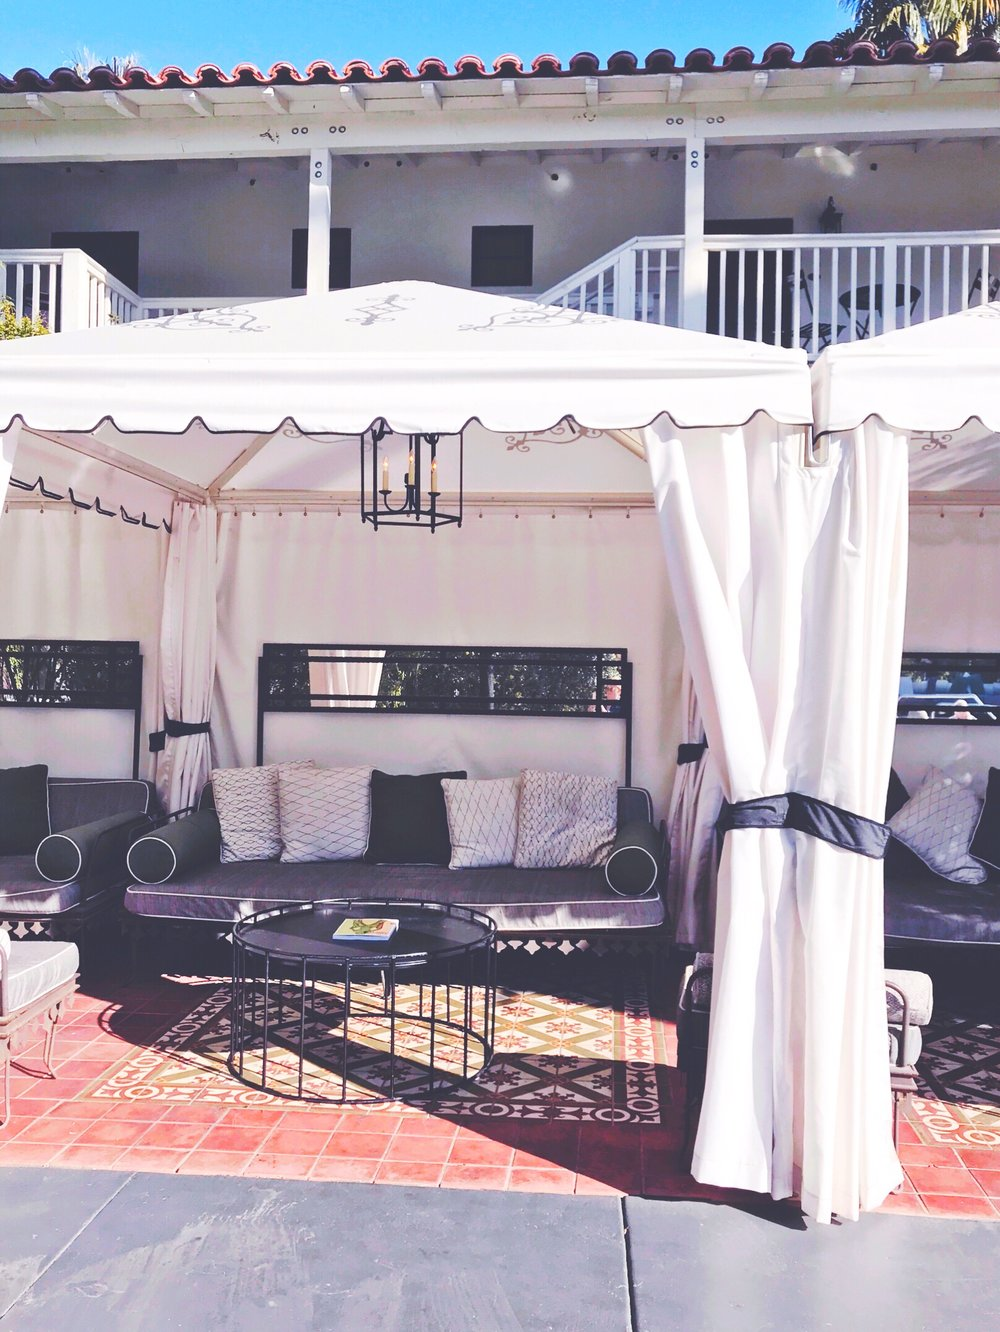 Pool cabanas at the Colony Palms